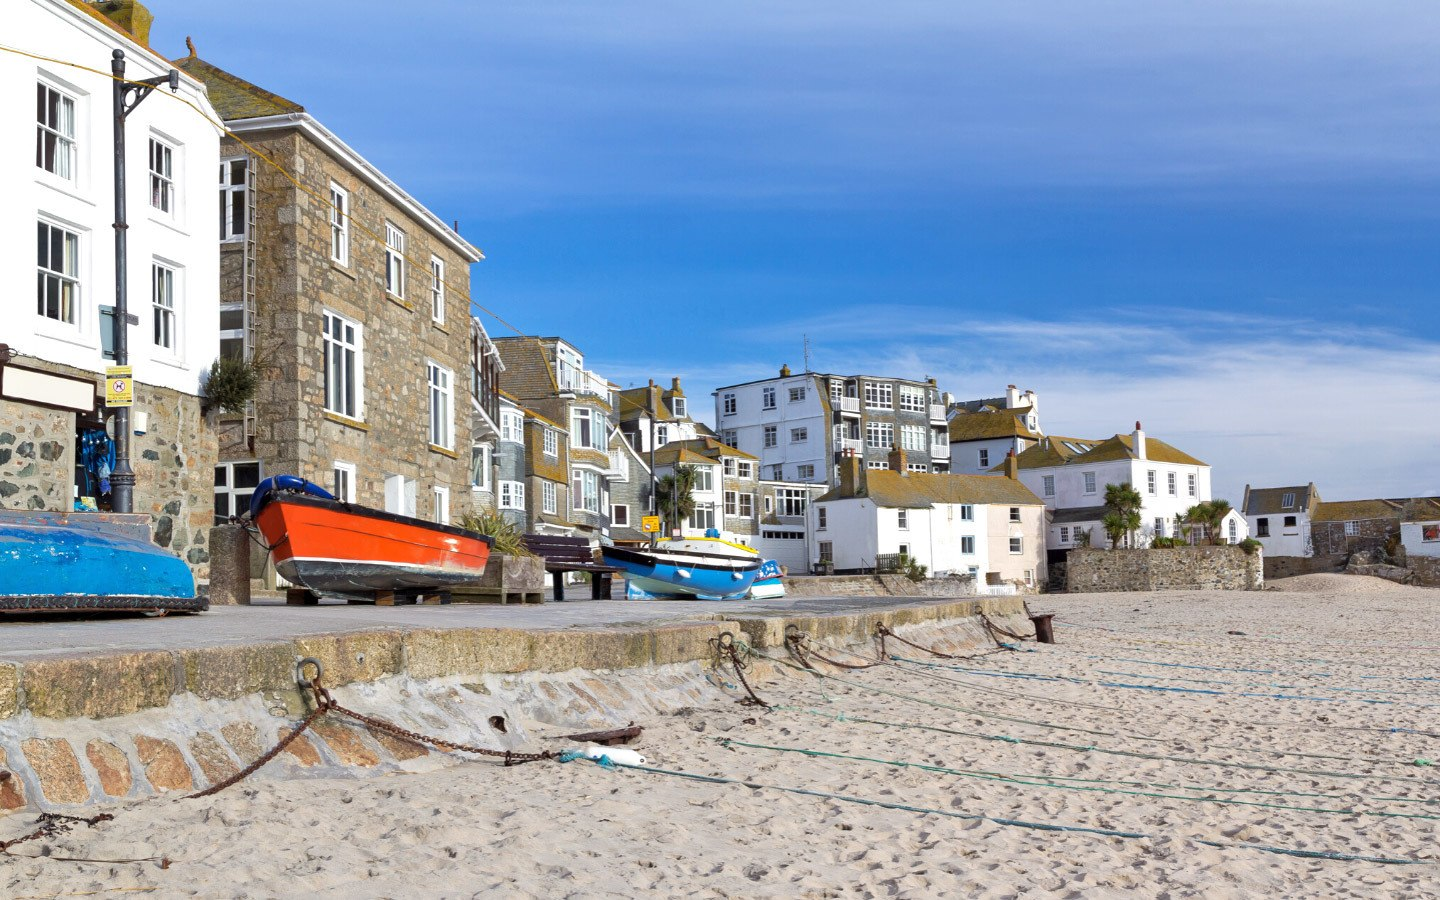 Beachfront in St Ives, Cornwall